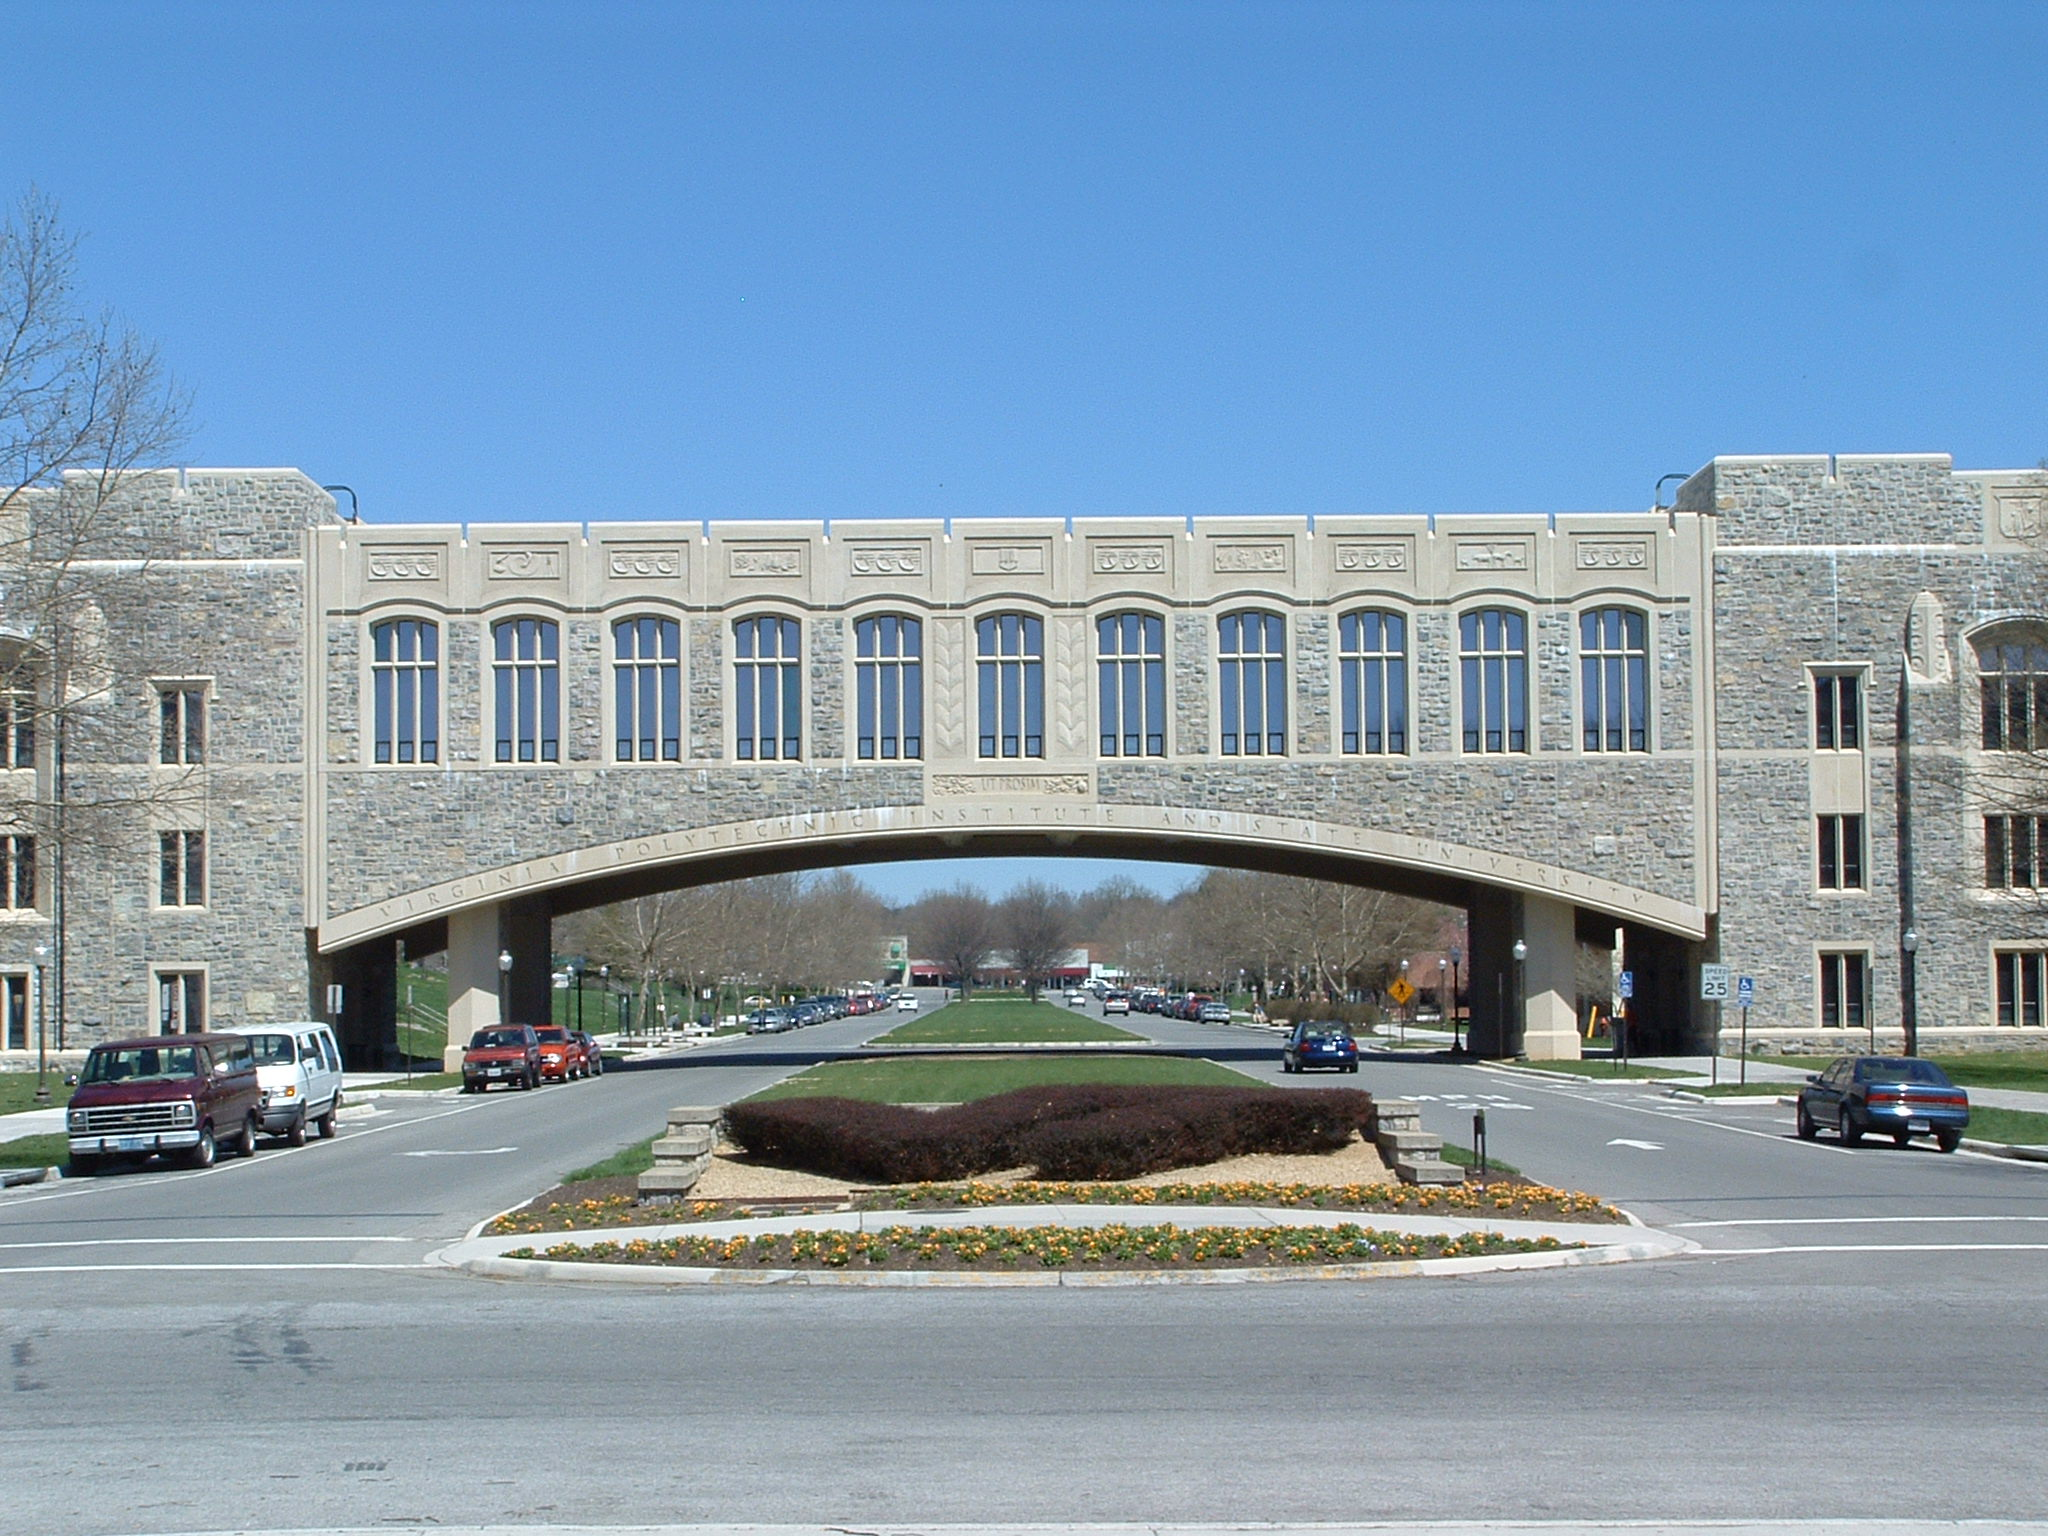 Torgersen Bridge on Alumni Mall; image by Buridan - Own work, Public Domain, https://commons.wikimedia.org/w/index.php?curid=102781